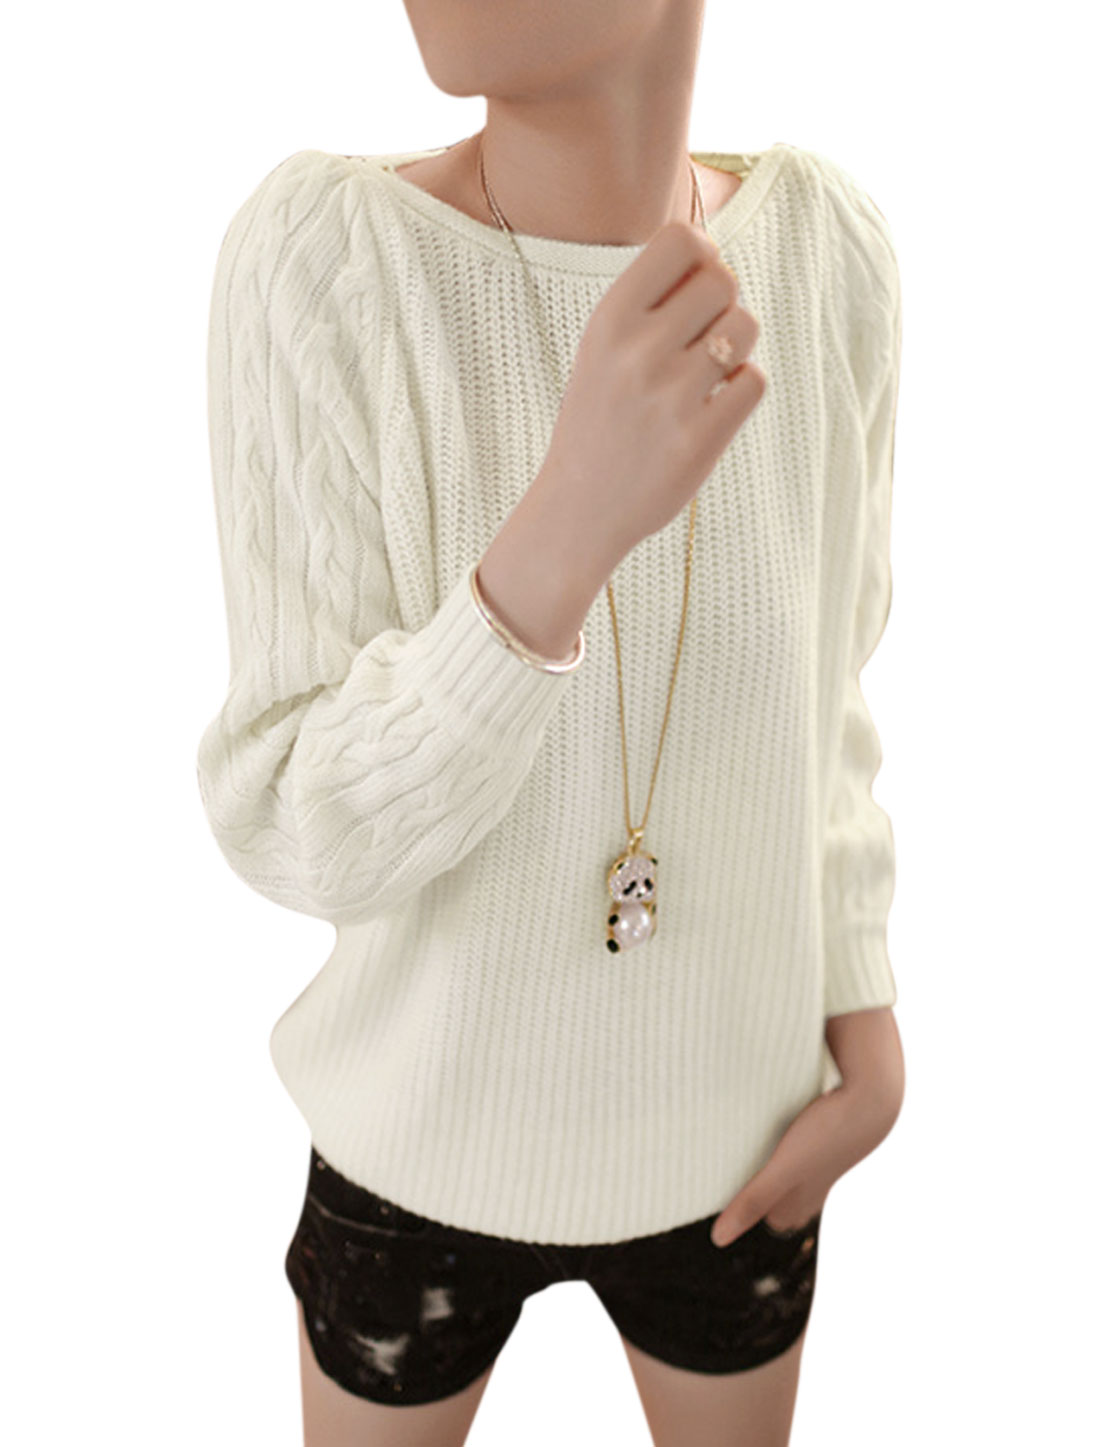 Women Round Neck Long Sleeve Leisure Cable Knit Sweater Beige S